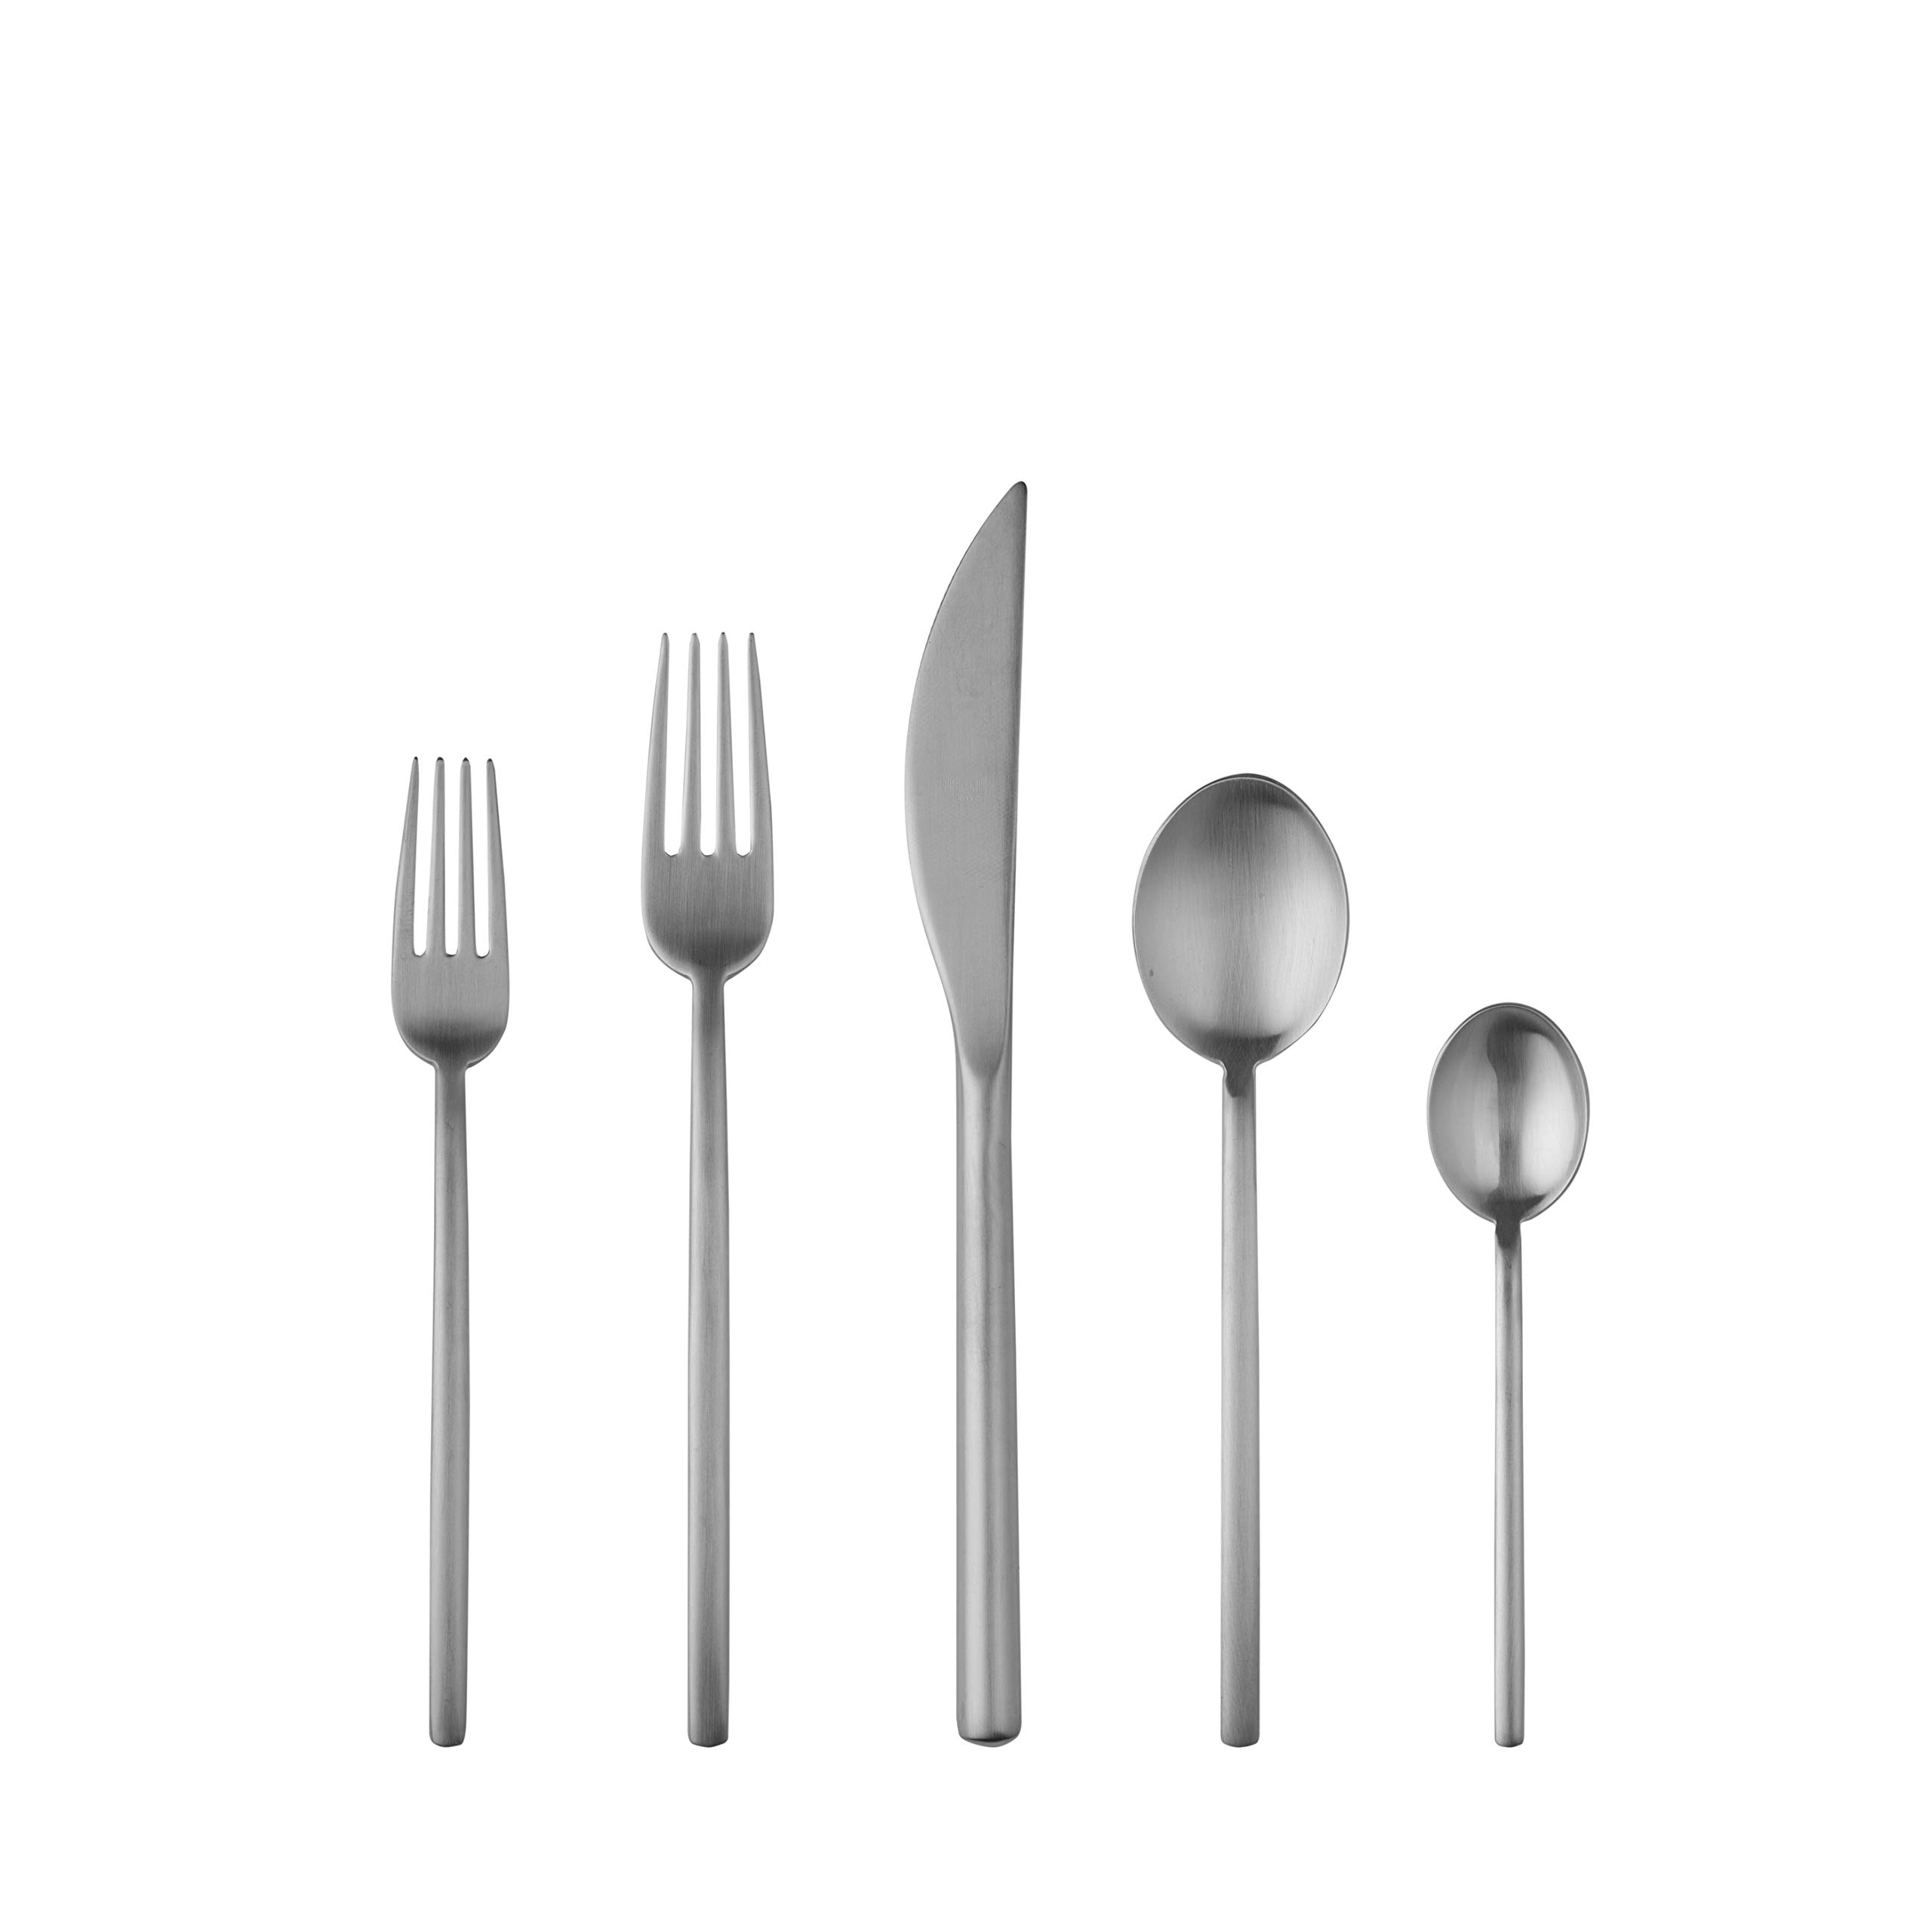 Mepra Due Ice 5 Piece Place Setting, Stainless Steel by MEPRA